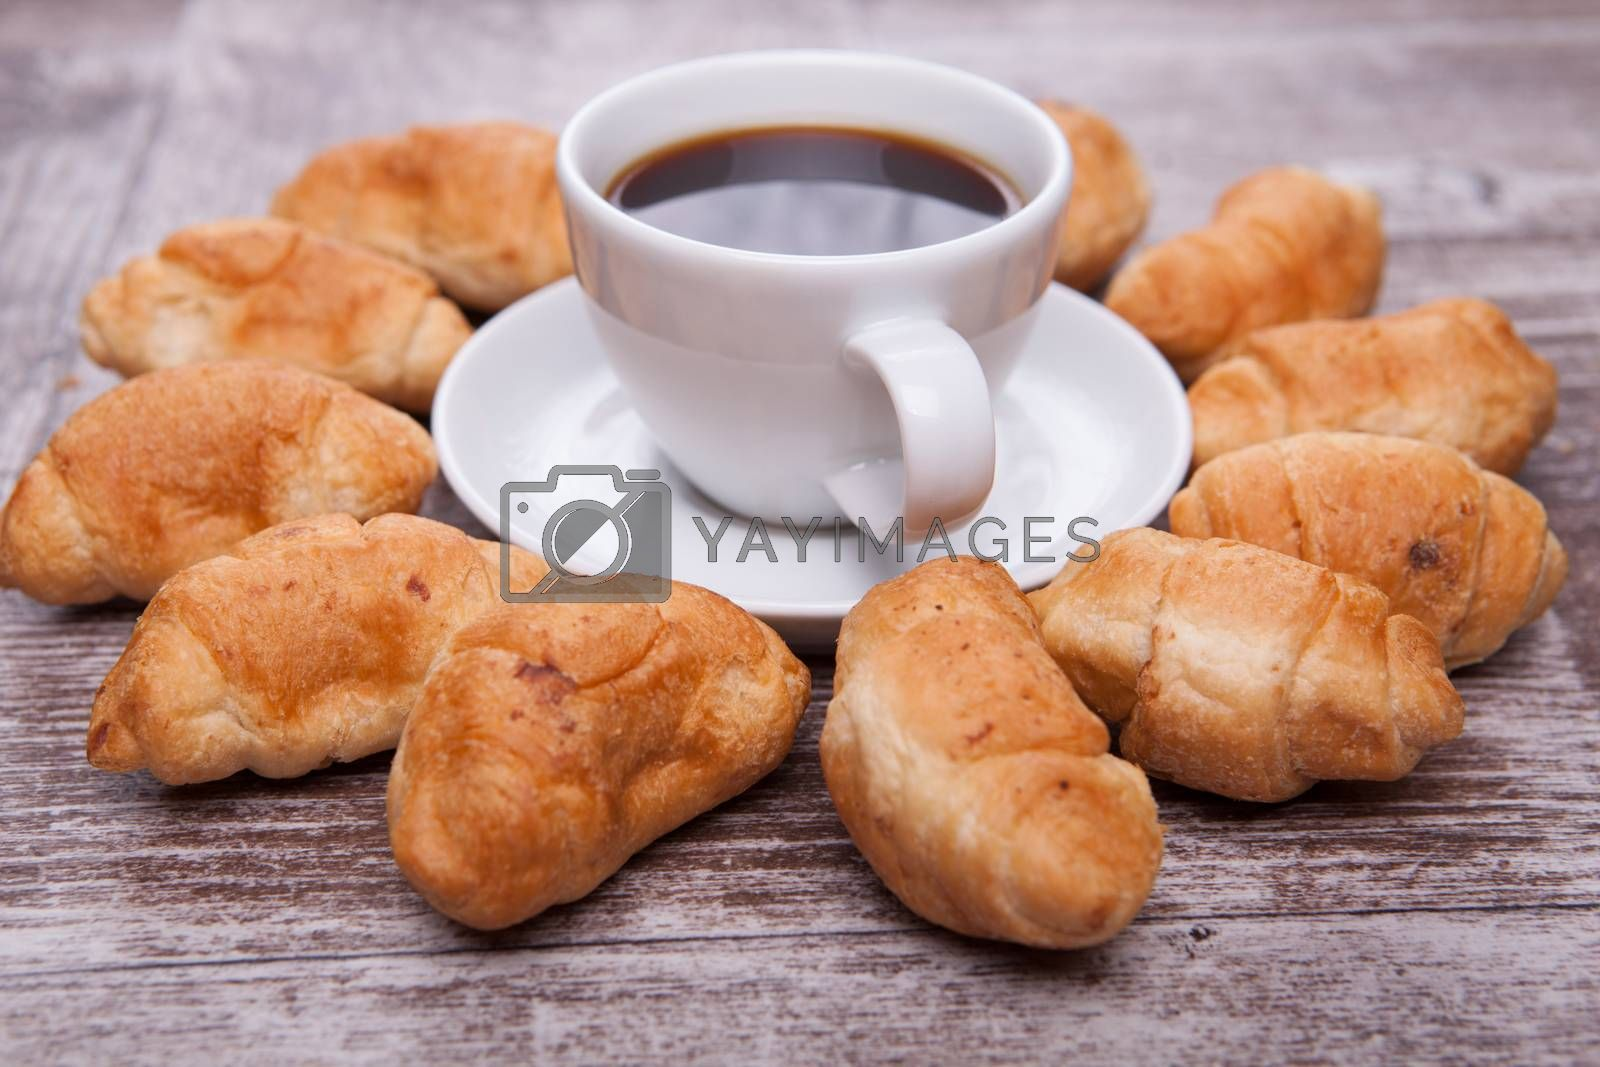 Freshly baked croissants on rustic wooden table with cup of coff by DCStudio